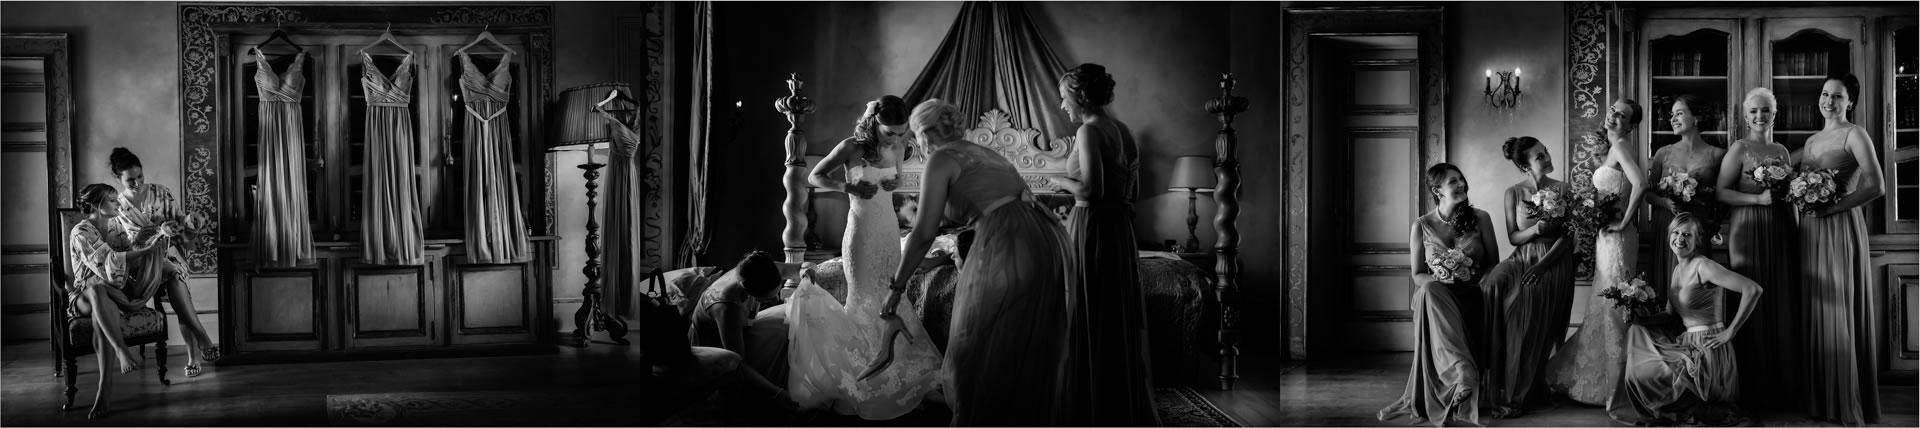 - 14 :: Wedding at Borgo Santo Pietro // San Galgano // WPPI 2018 // You look like a movie :: Luxury wedding photography - 13 ::  - 14